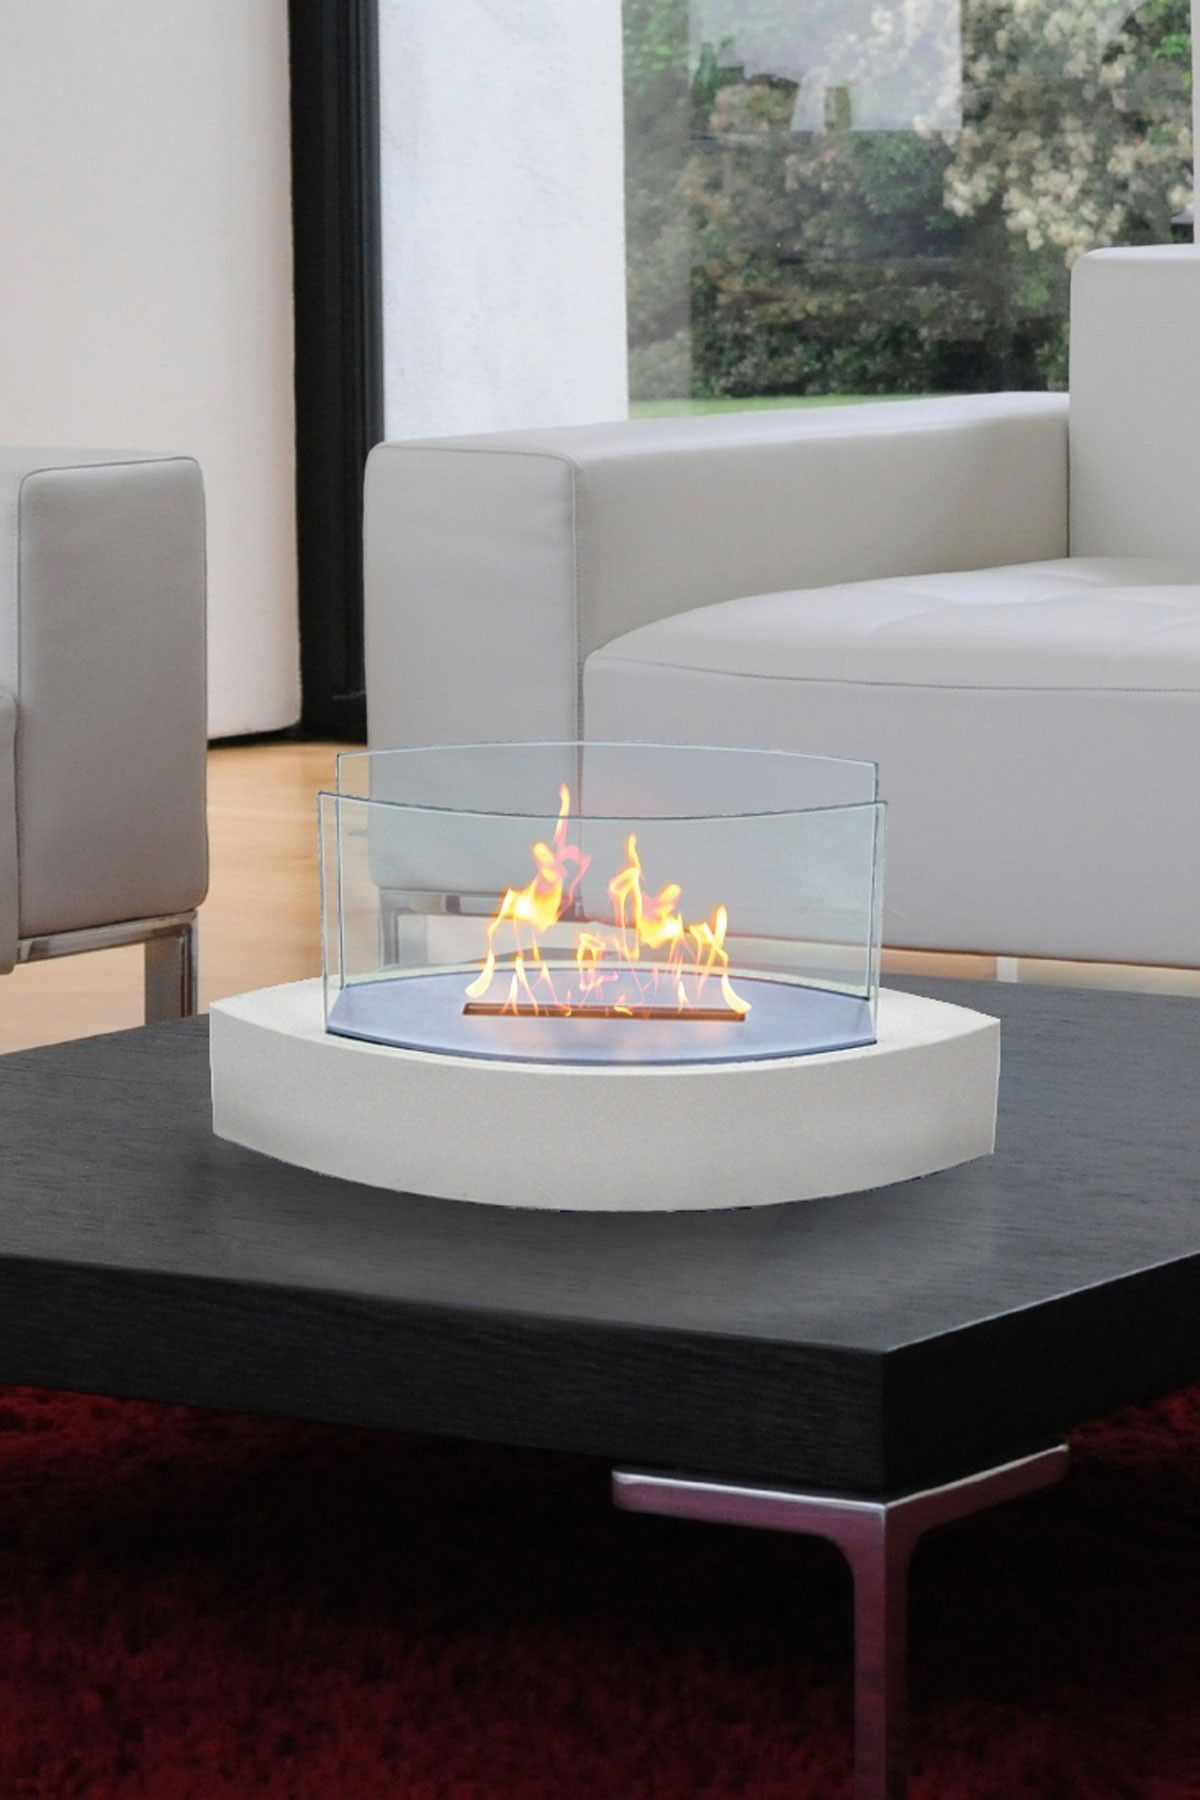 table top indoor fireplace a a h o m e sweet h o m e